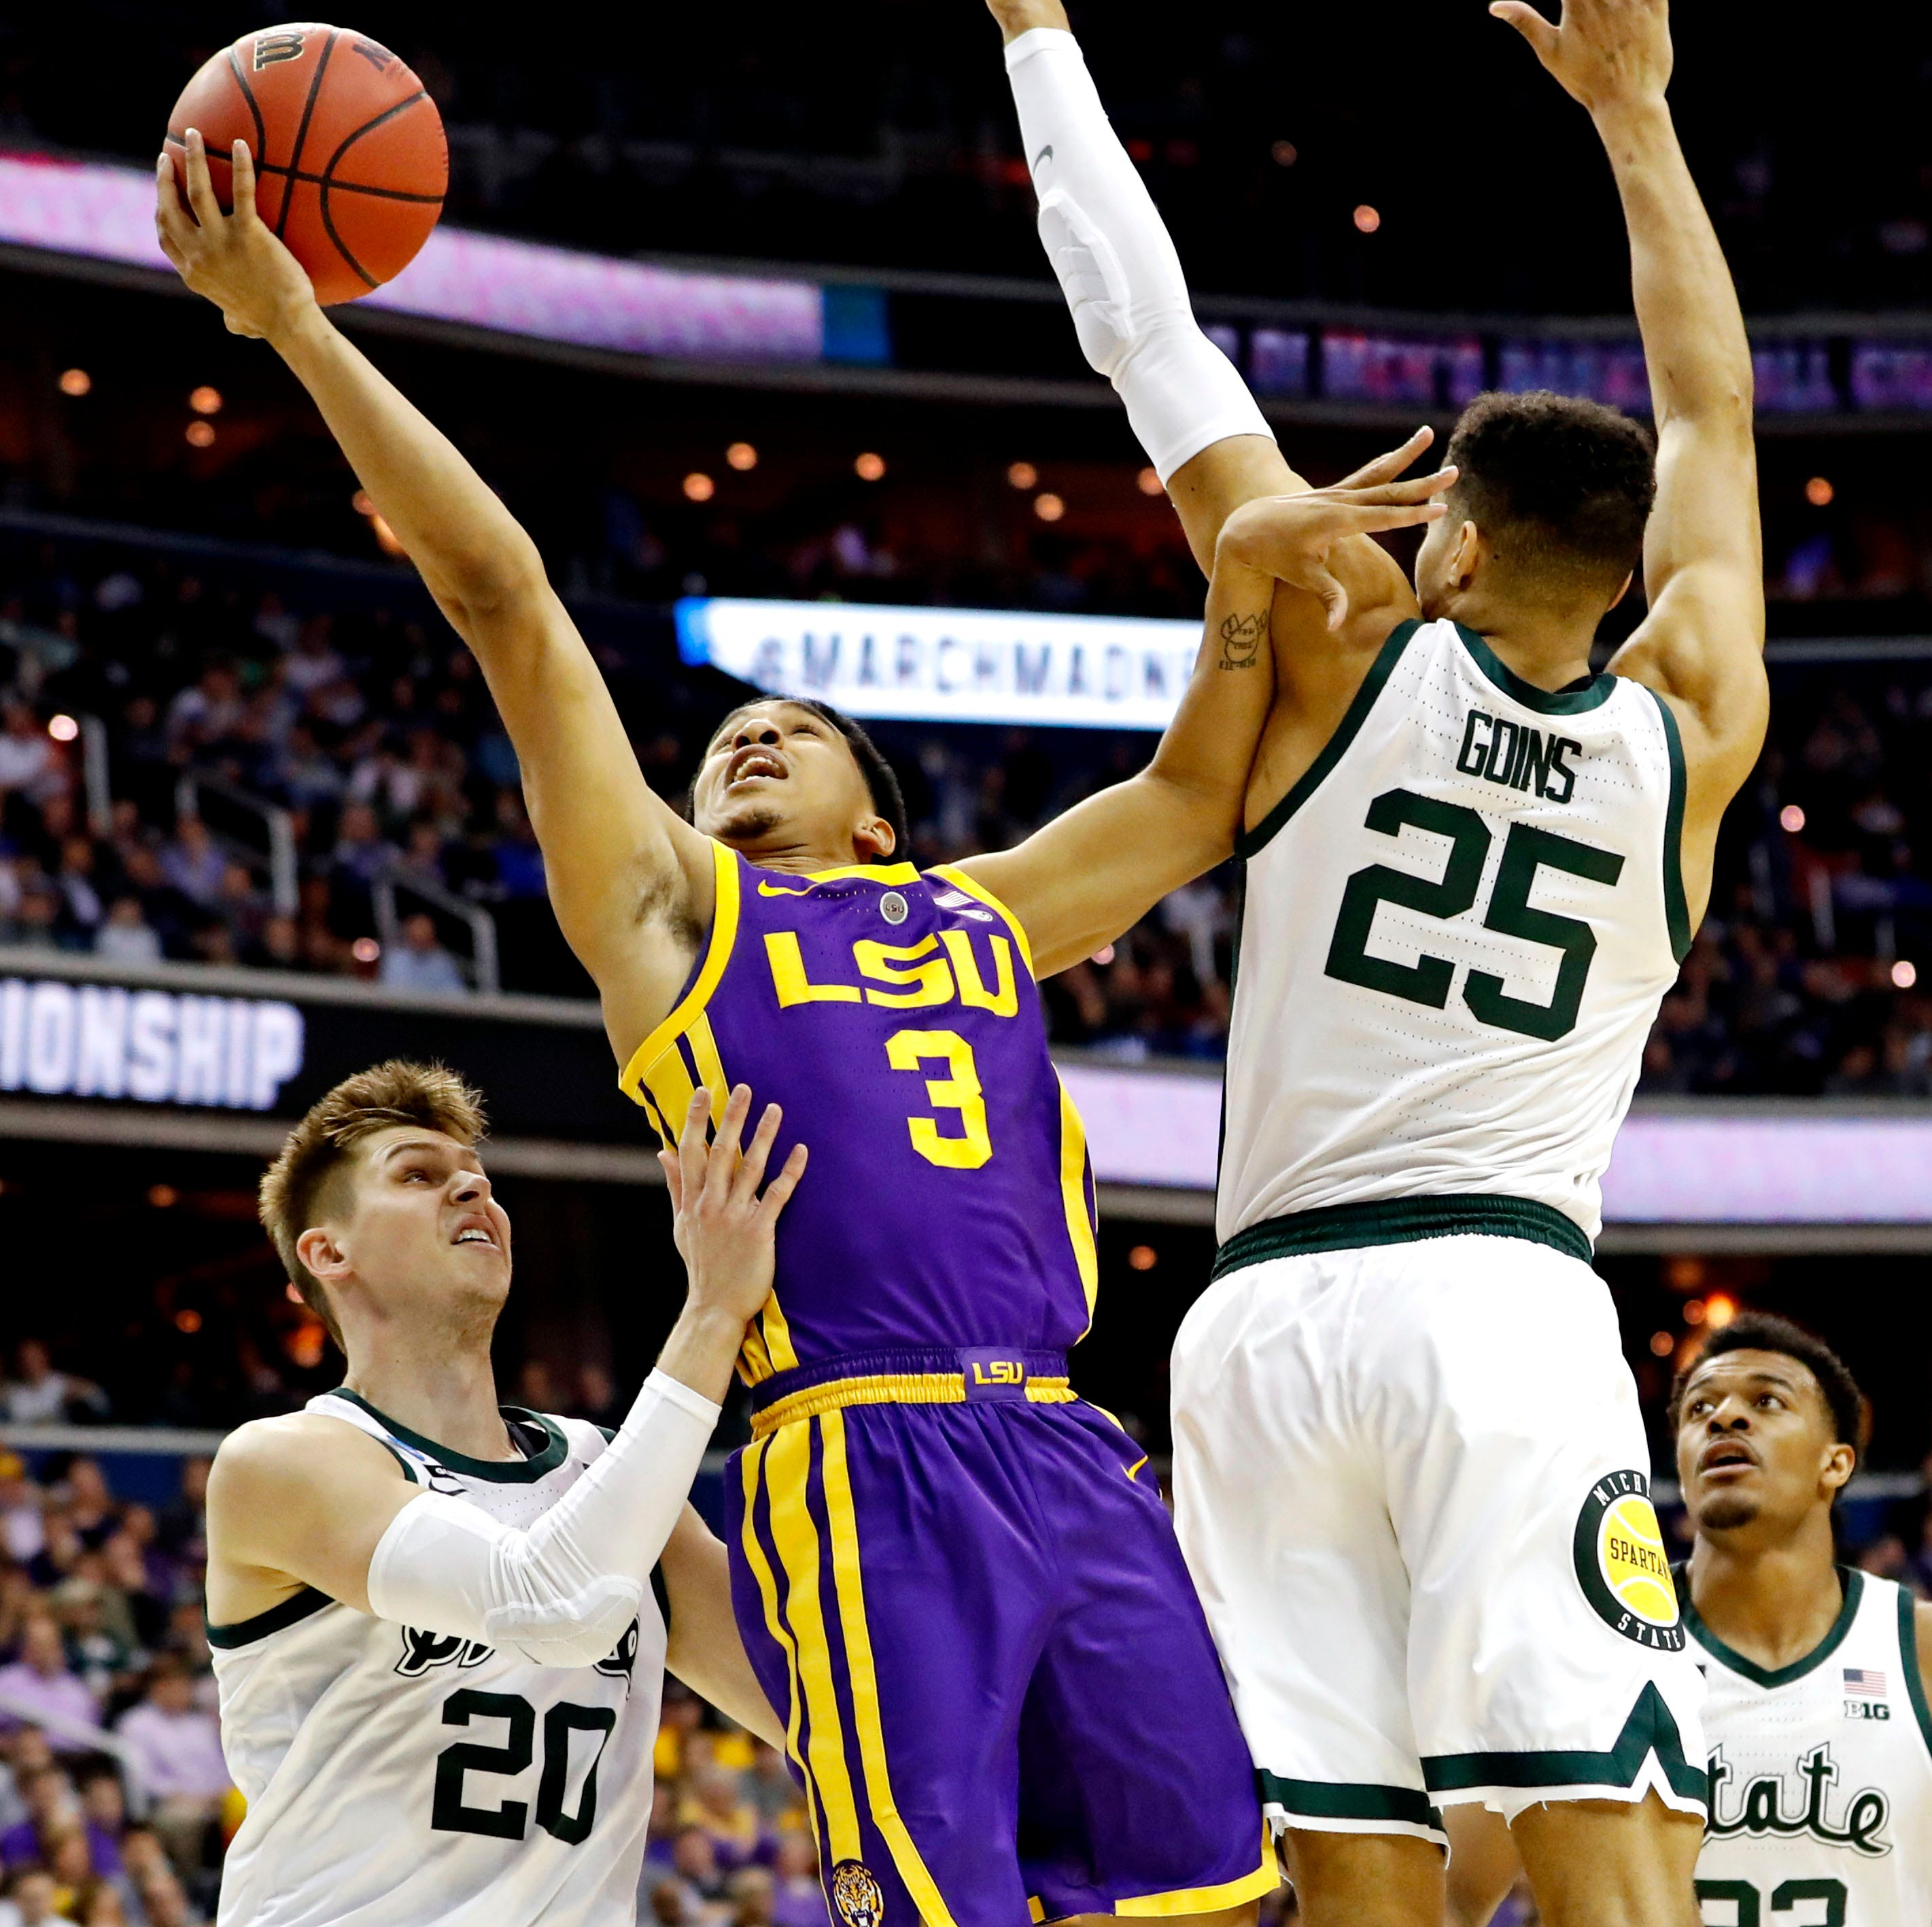 NCAA Tournament 2019: LSU vs. Michigan State basketball game highlights, score